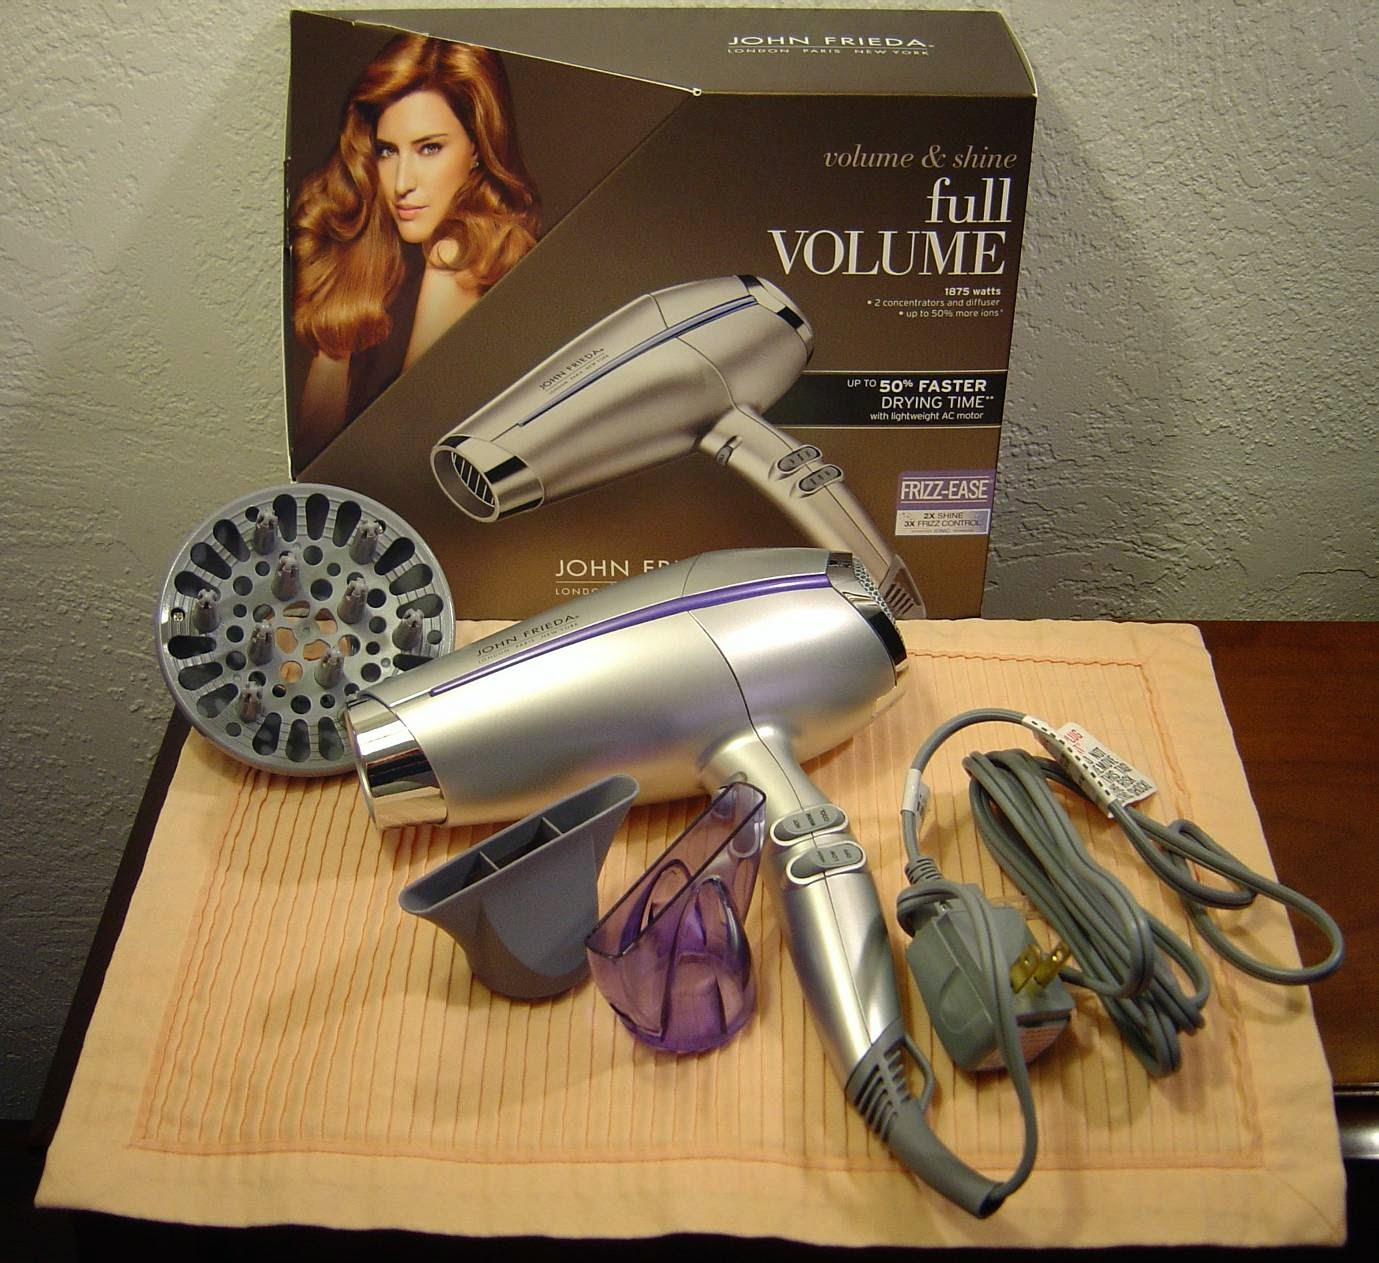 John Frieda's Full Volume Hair Dryer.jpeg